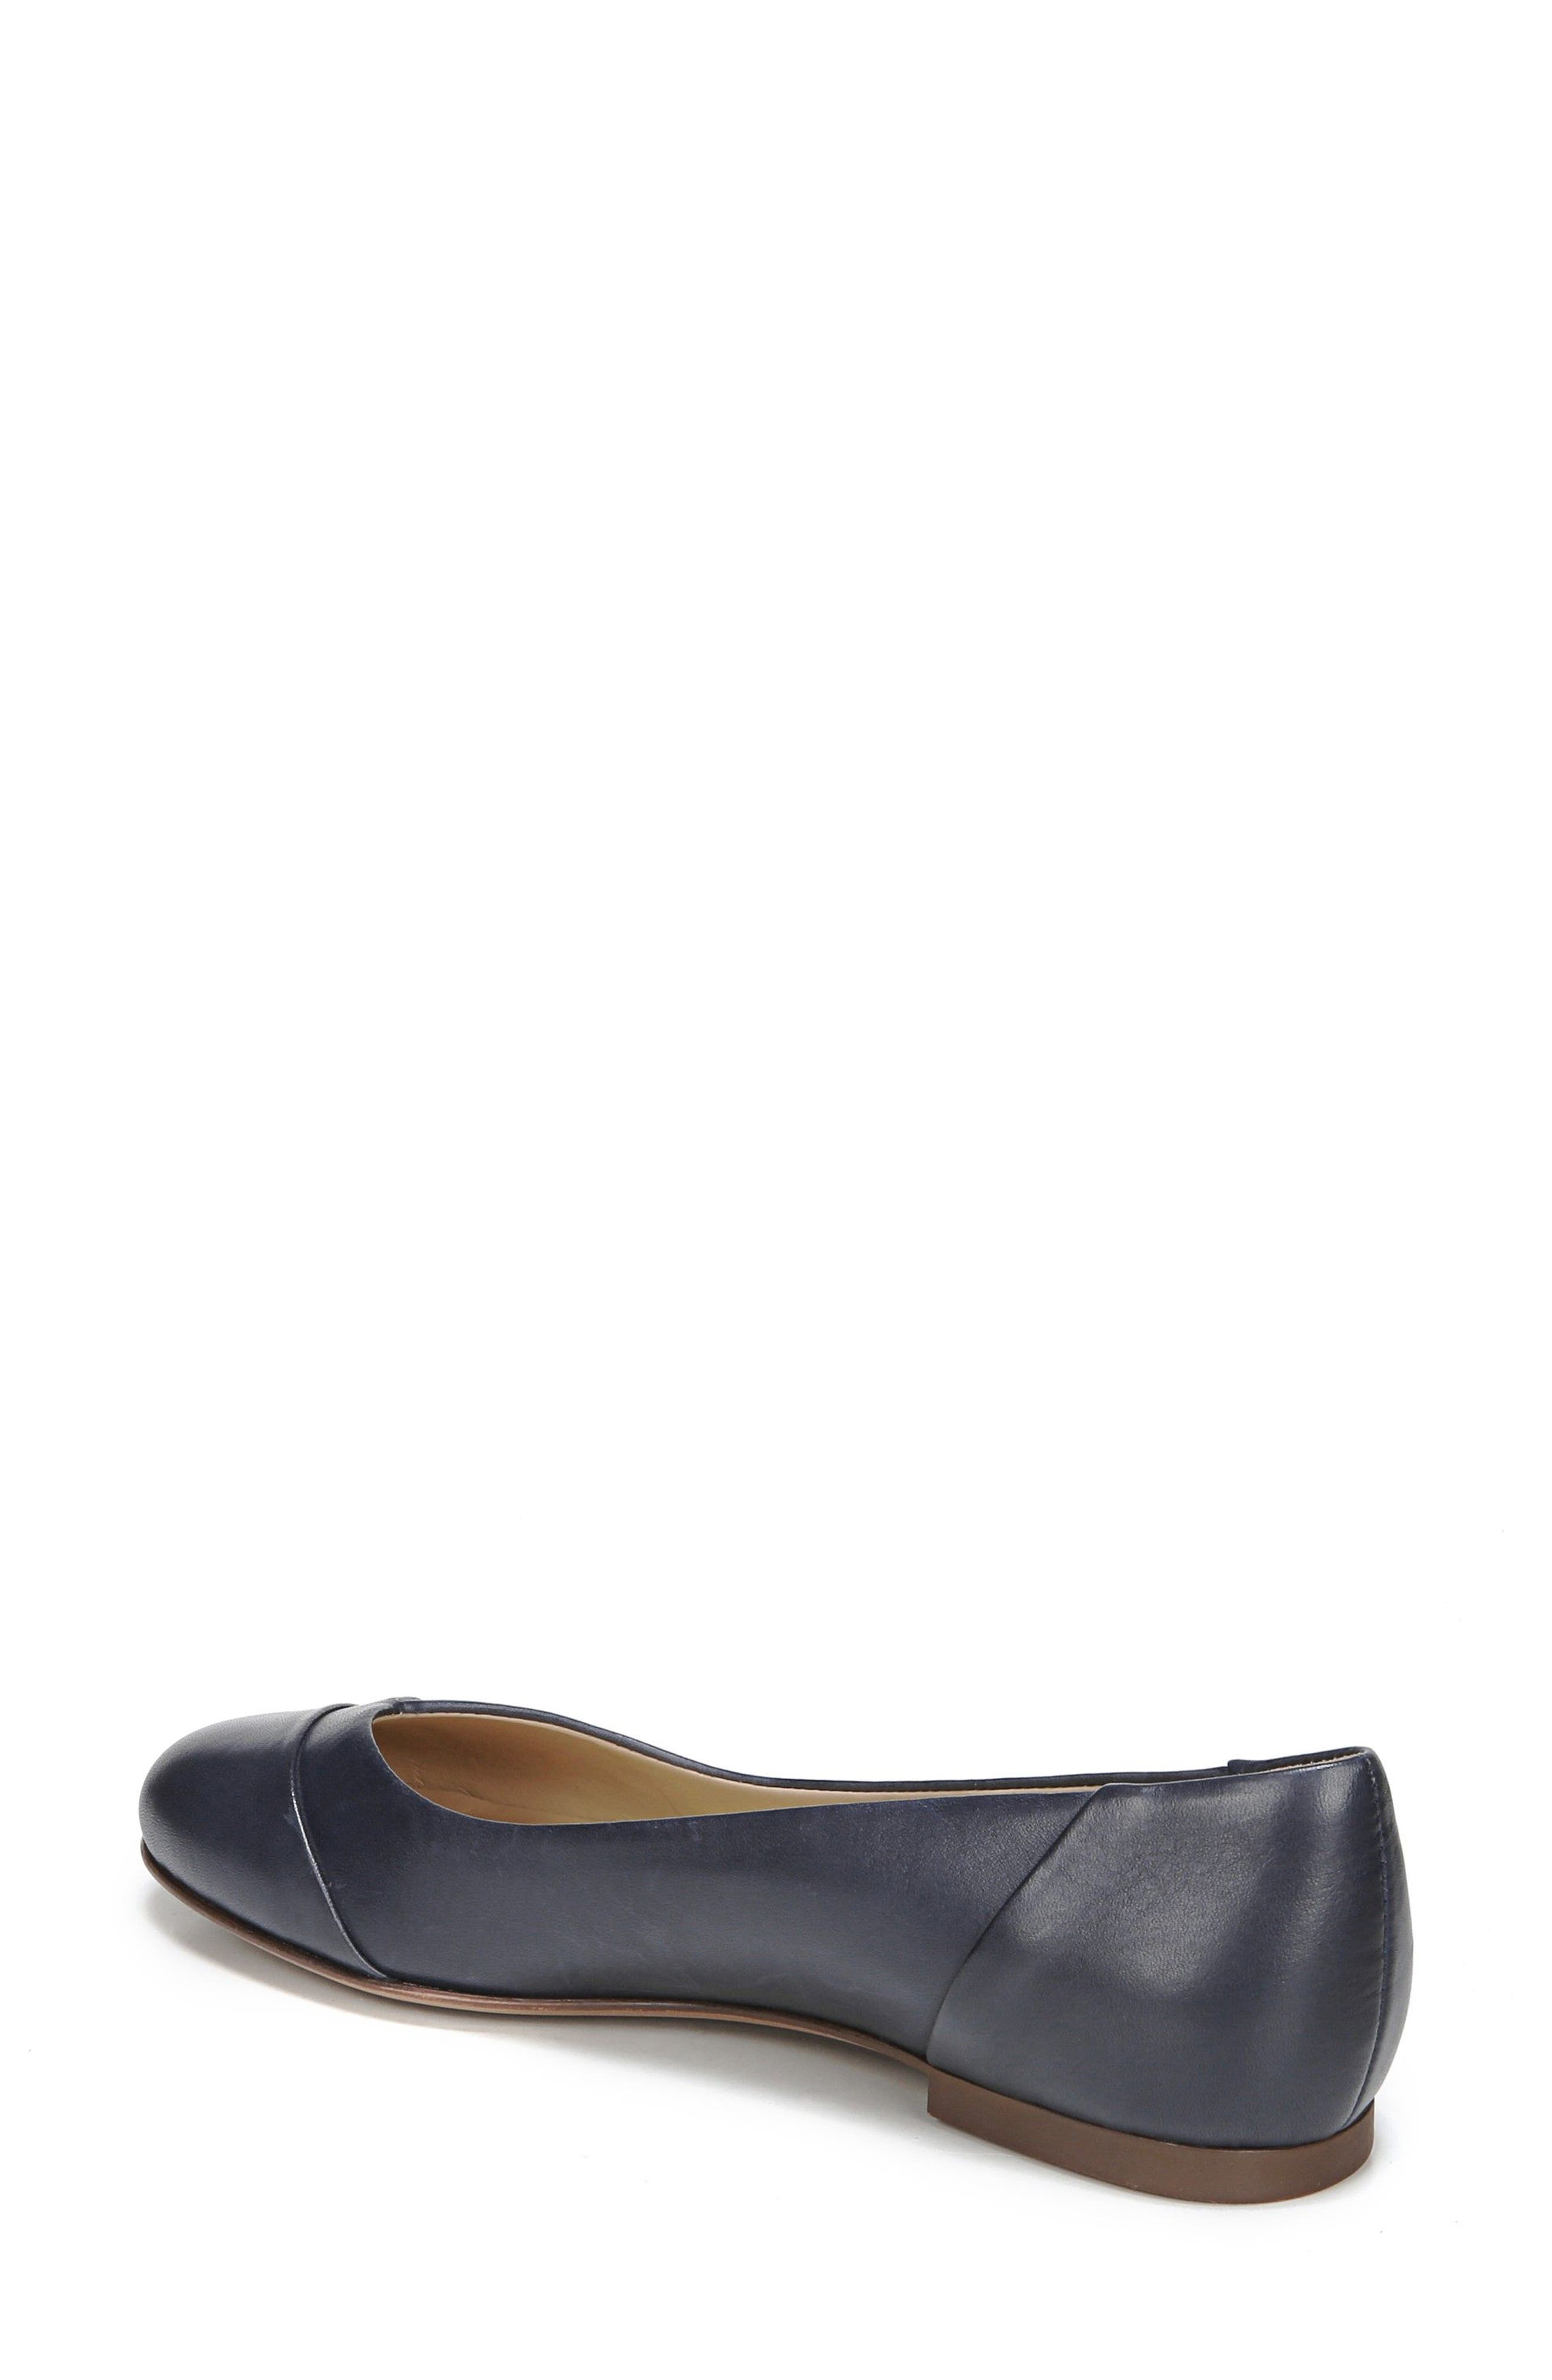 Gilly Flat,                             Alternate thumbnail 2, color,                             NAVY LEATHER